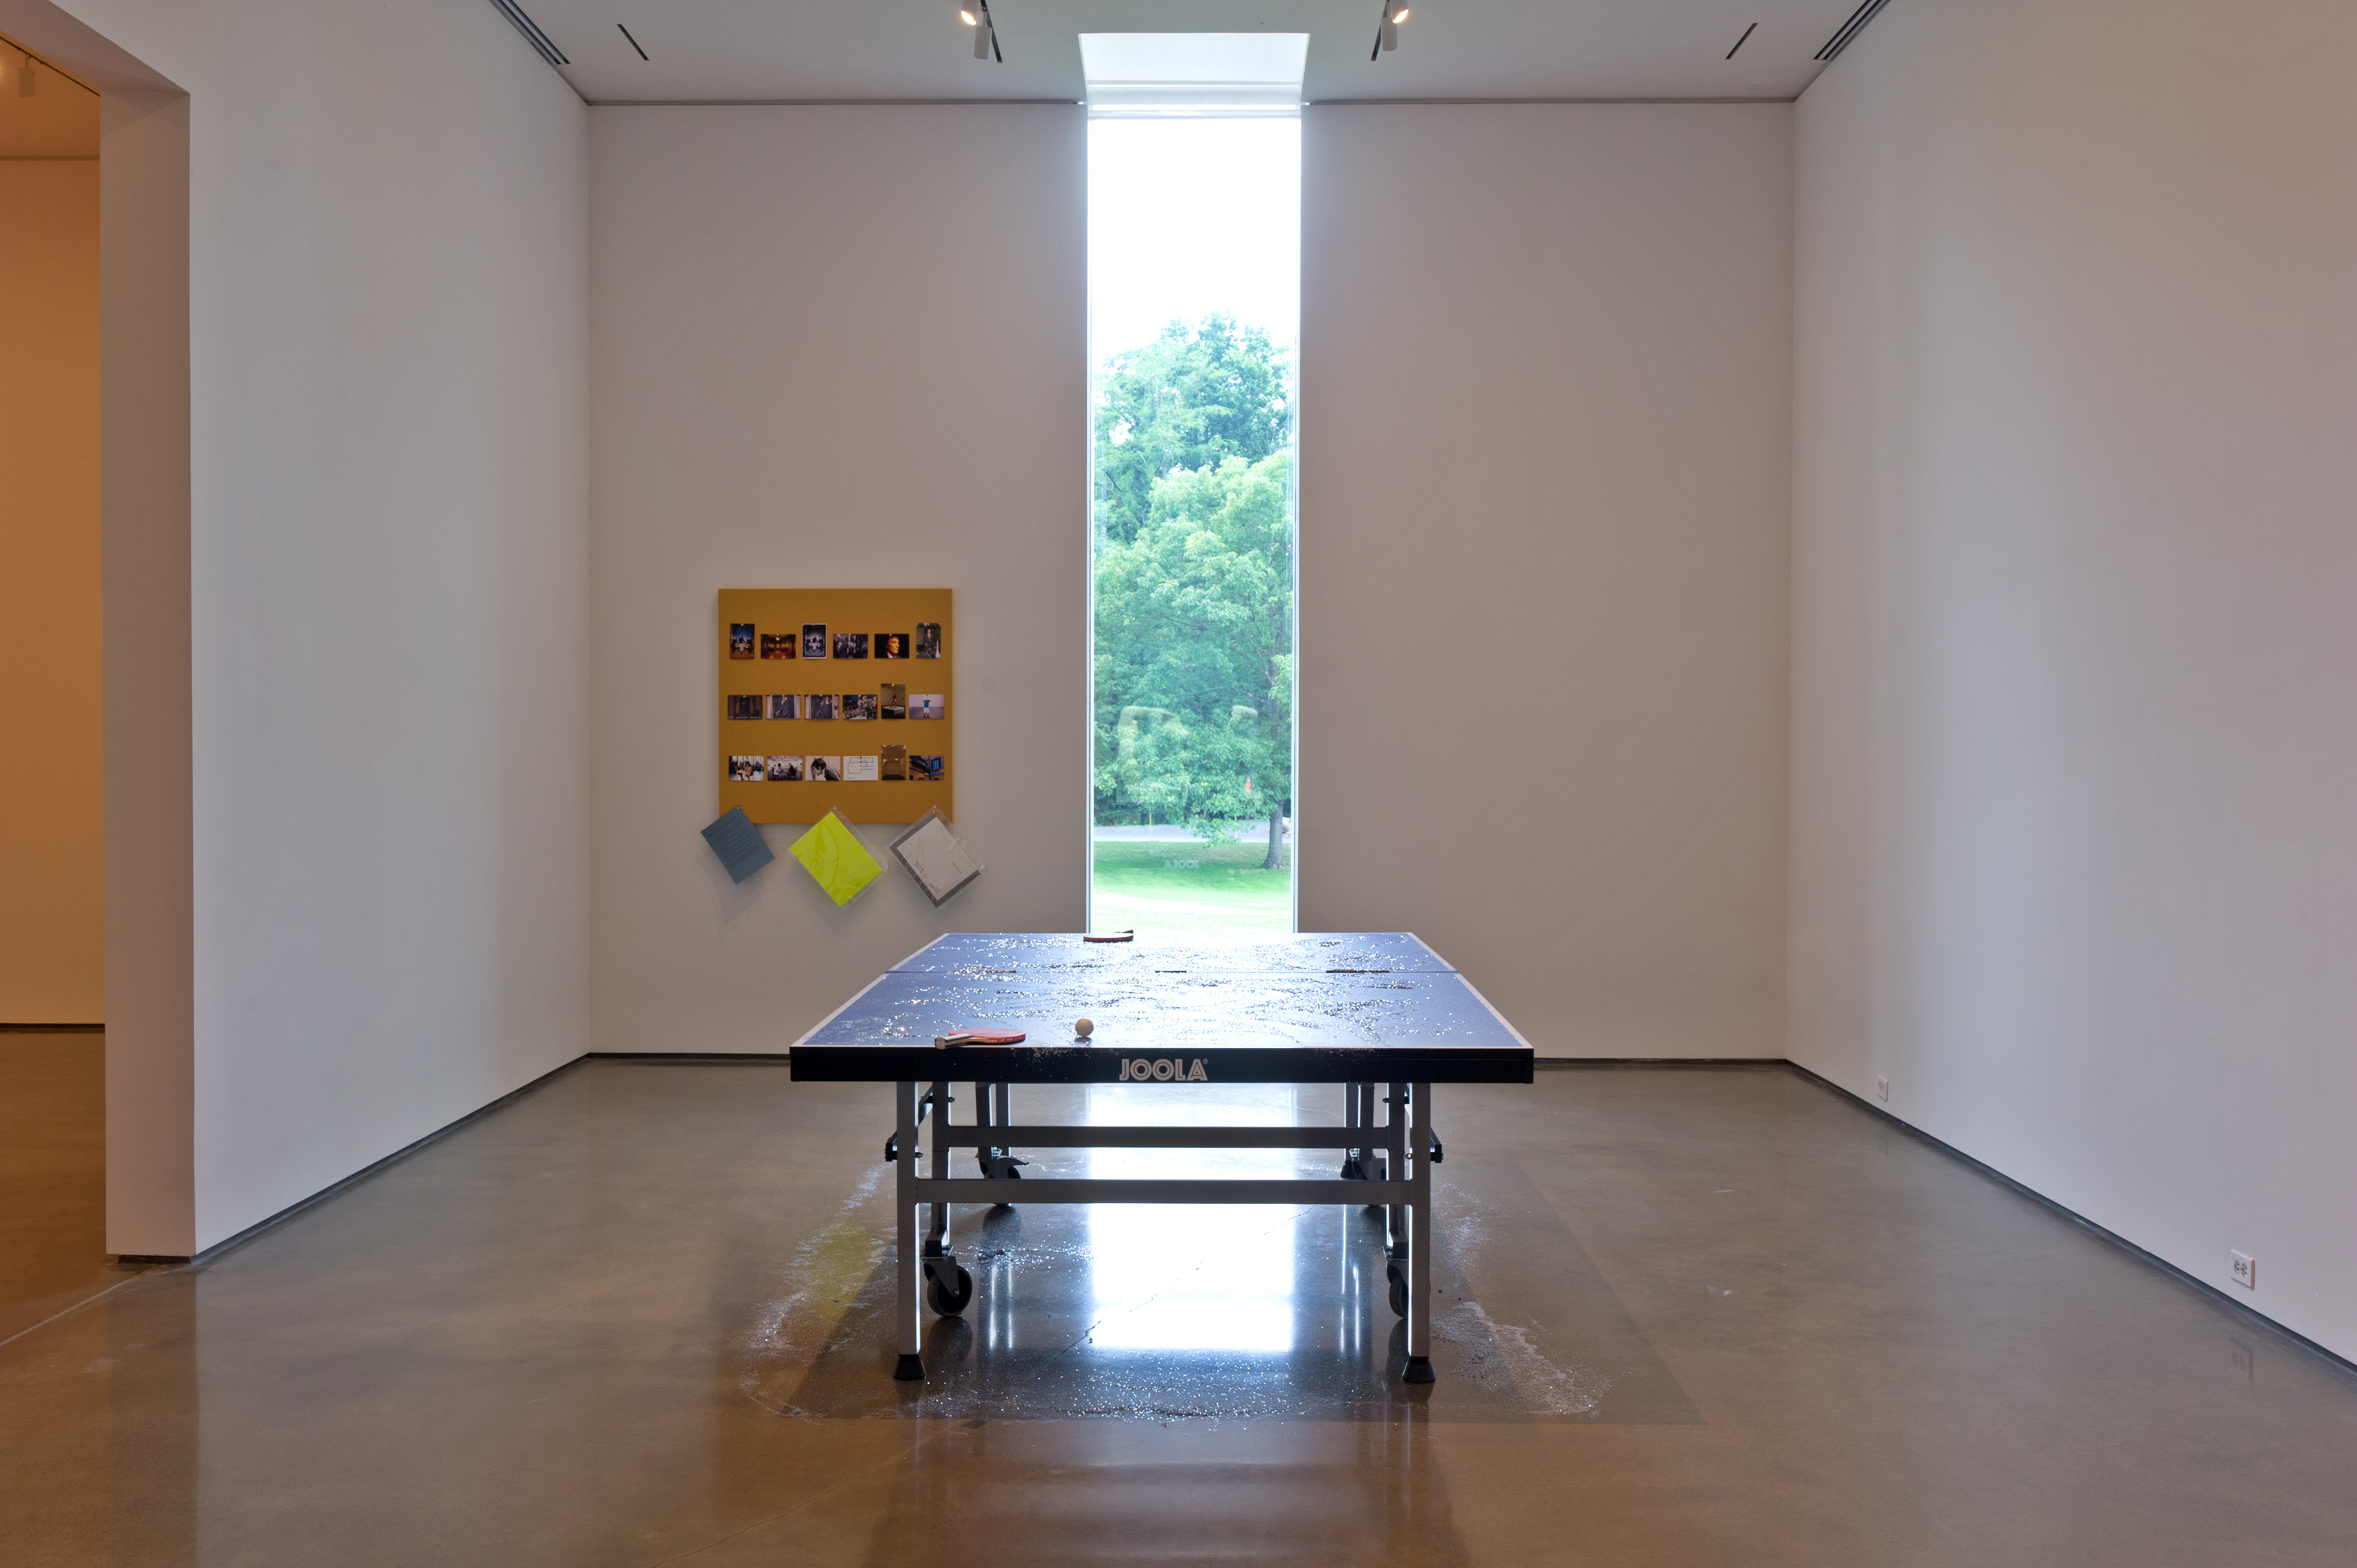 Liam Gillick, (The What if? Scenario) Dining Table, 1996 and The Pinboard Project, (Corn), 1992/2012. Realized by Vincenzo de Bellis. Installation view of From 199A to 199B : Liam Gillick, Hessel Museum of Art, 2012, Chris Kendall Photographer